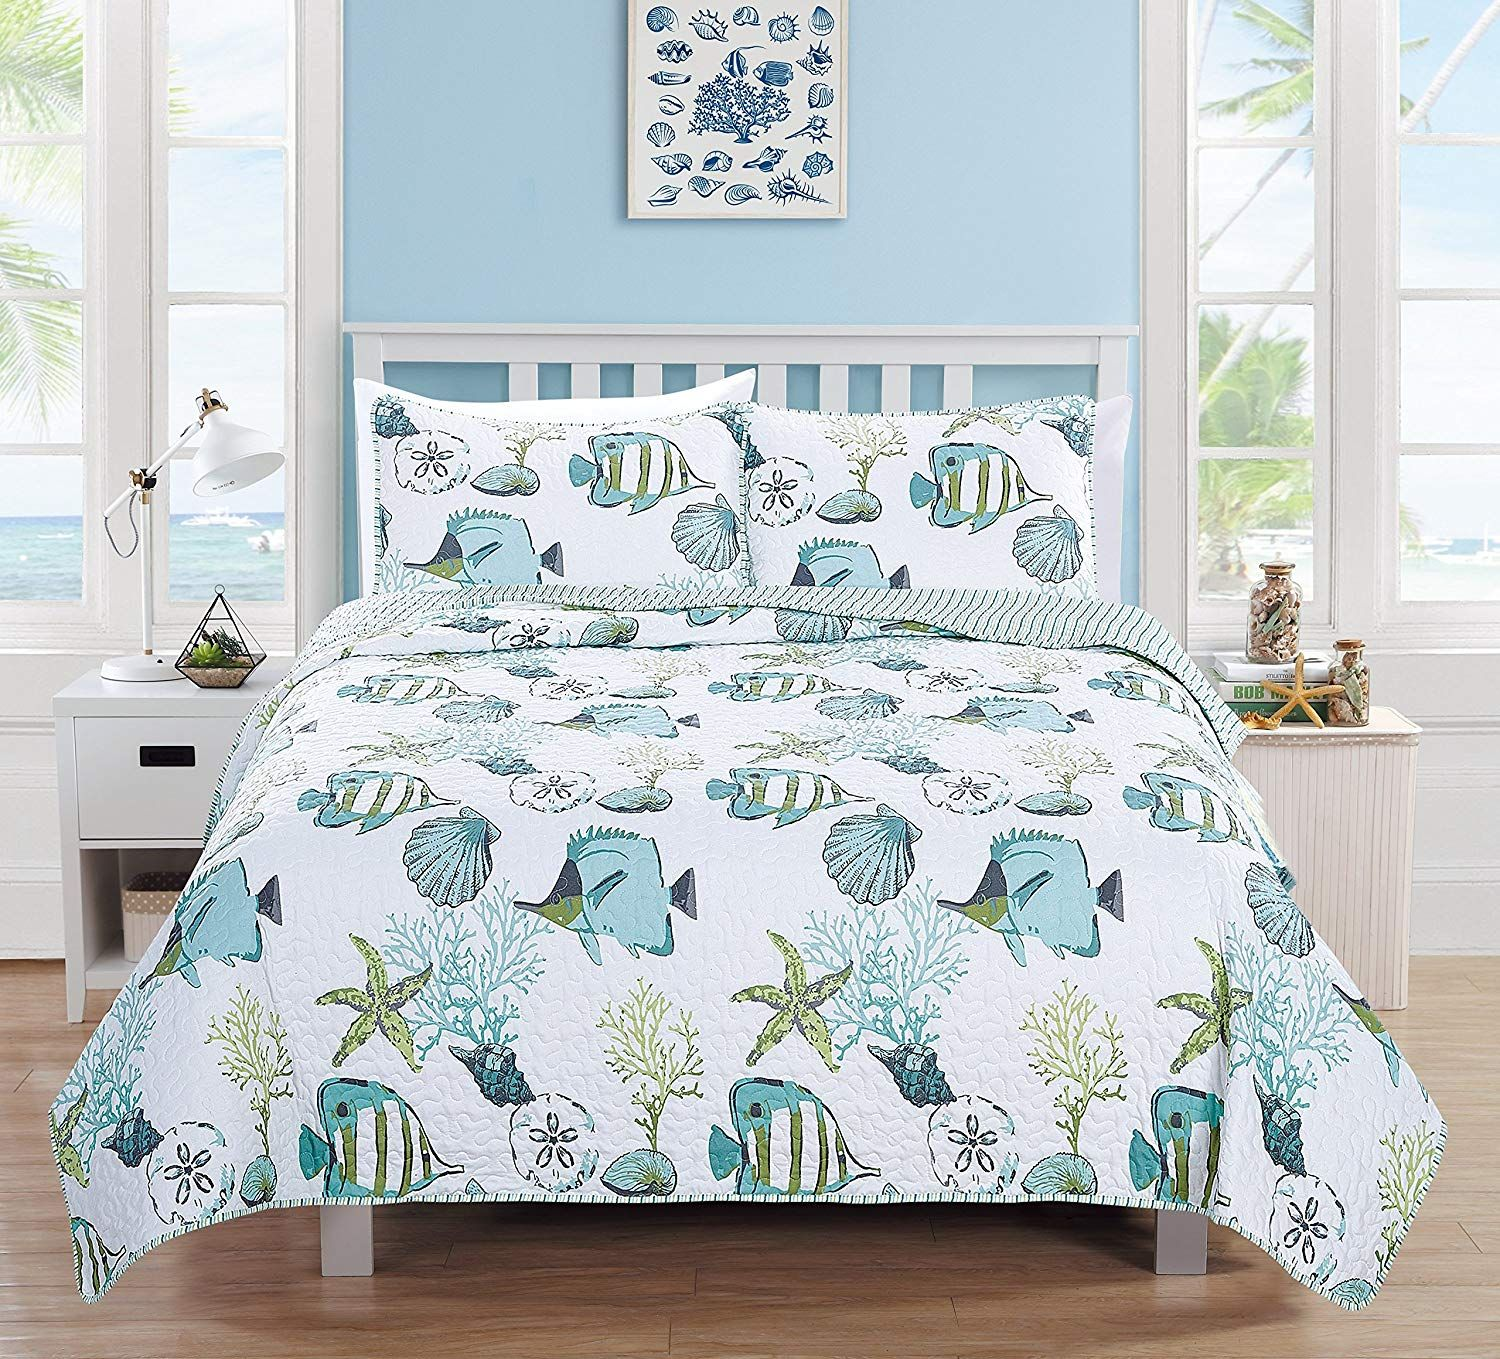 Beach Comforters Quilts Ease Bedding With Style Beach